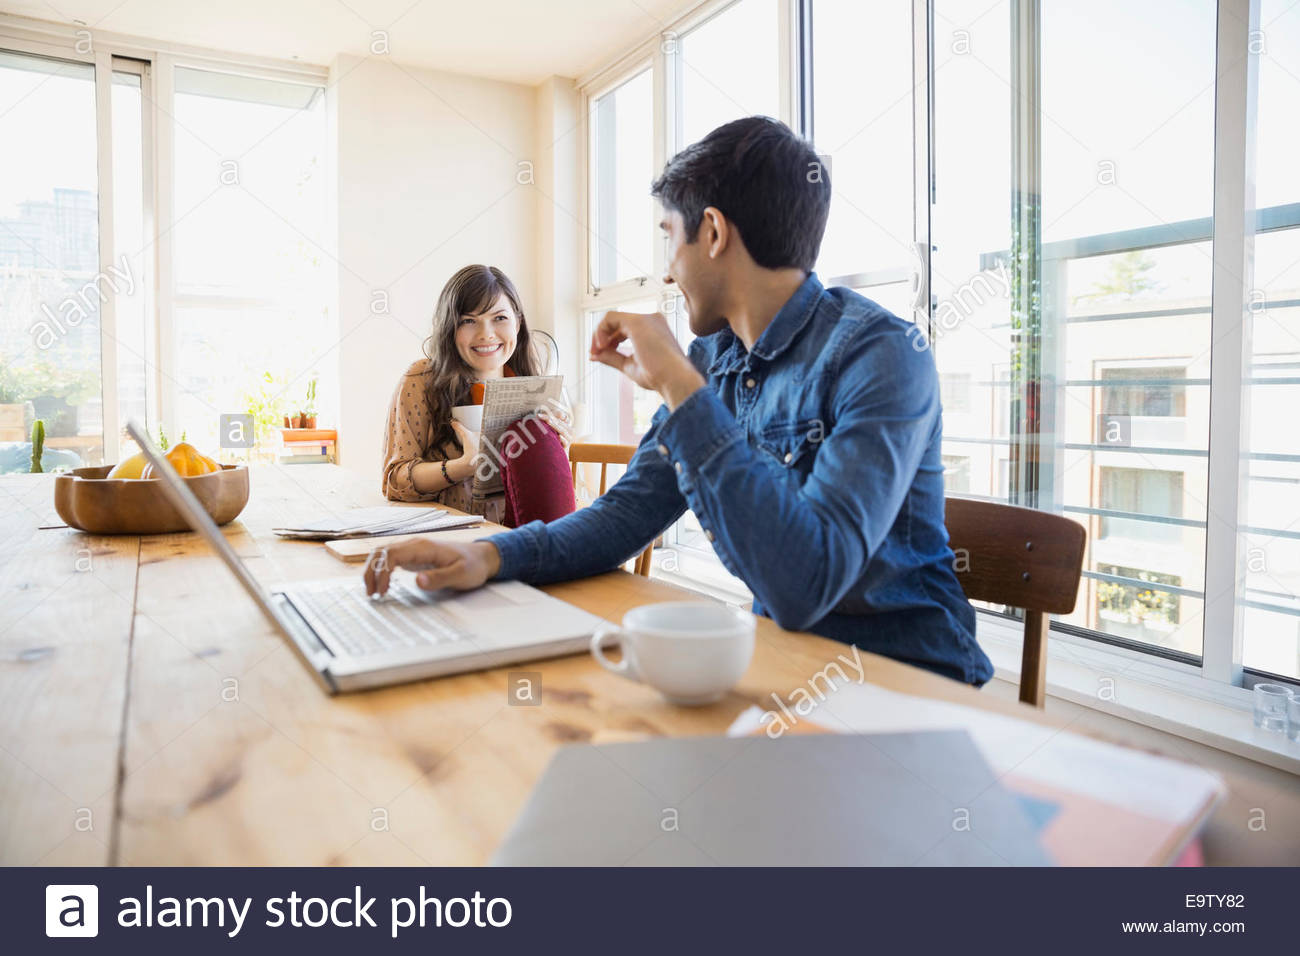 Couple reading and using laptop at table - Stock Image